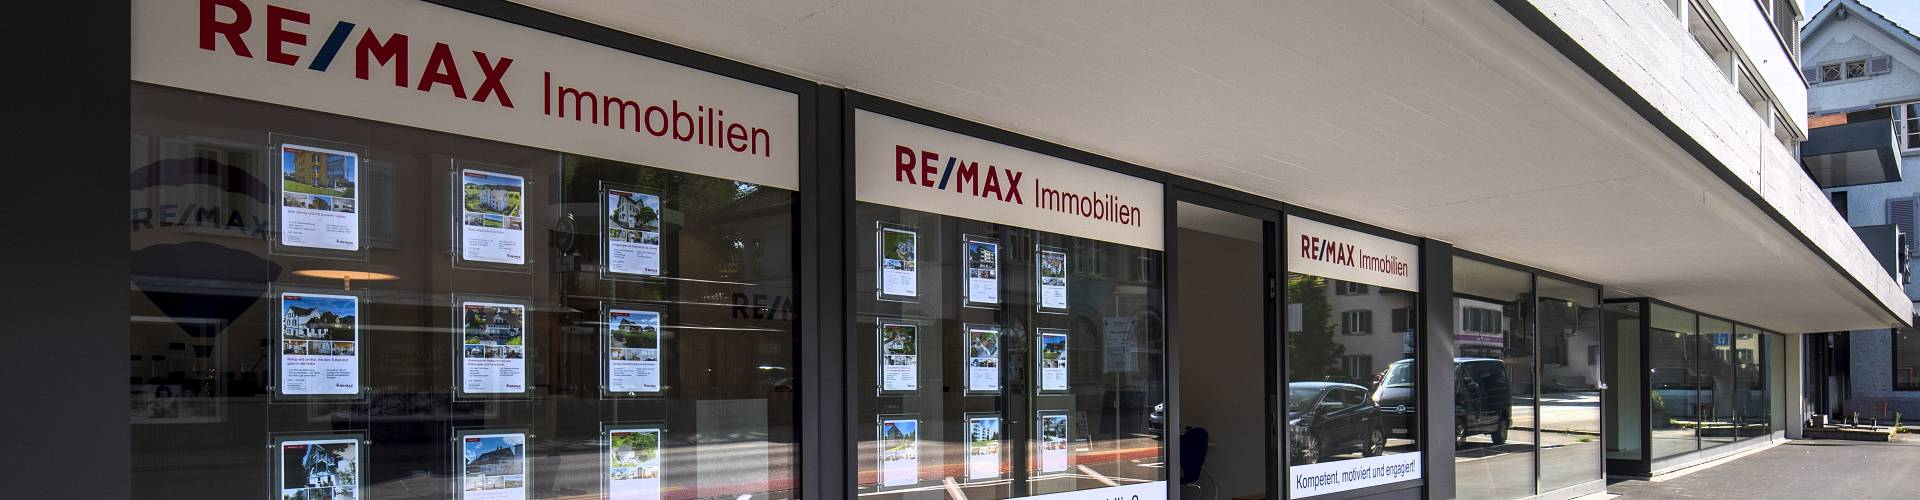 RE/MAX Immobilien in Wetzikon